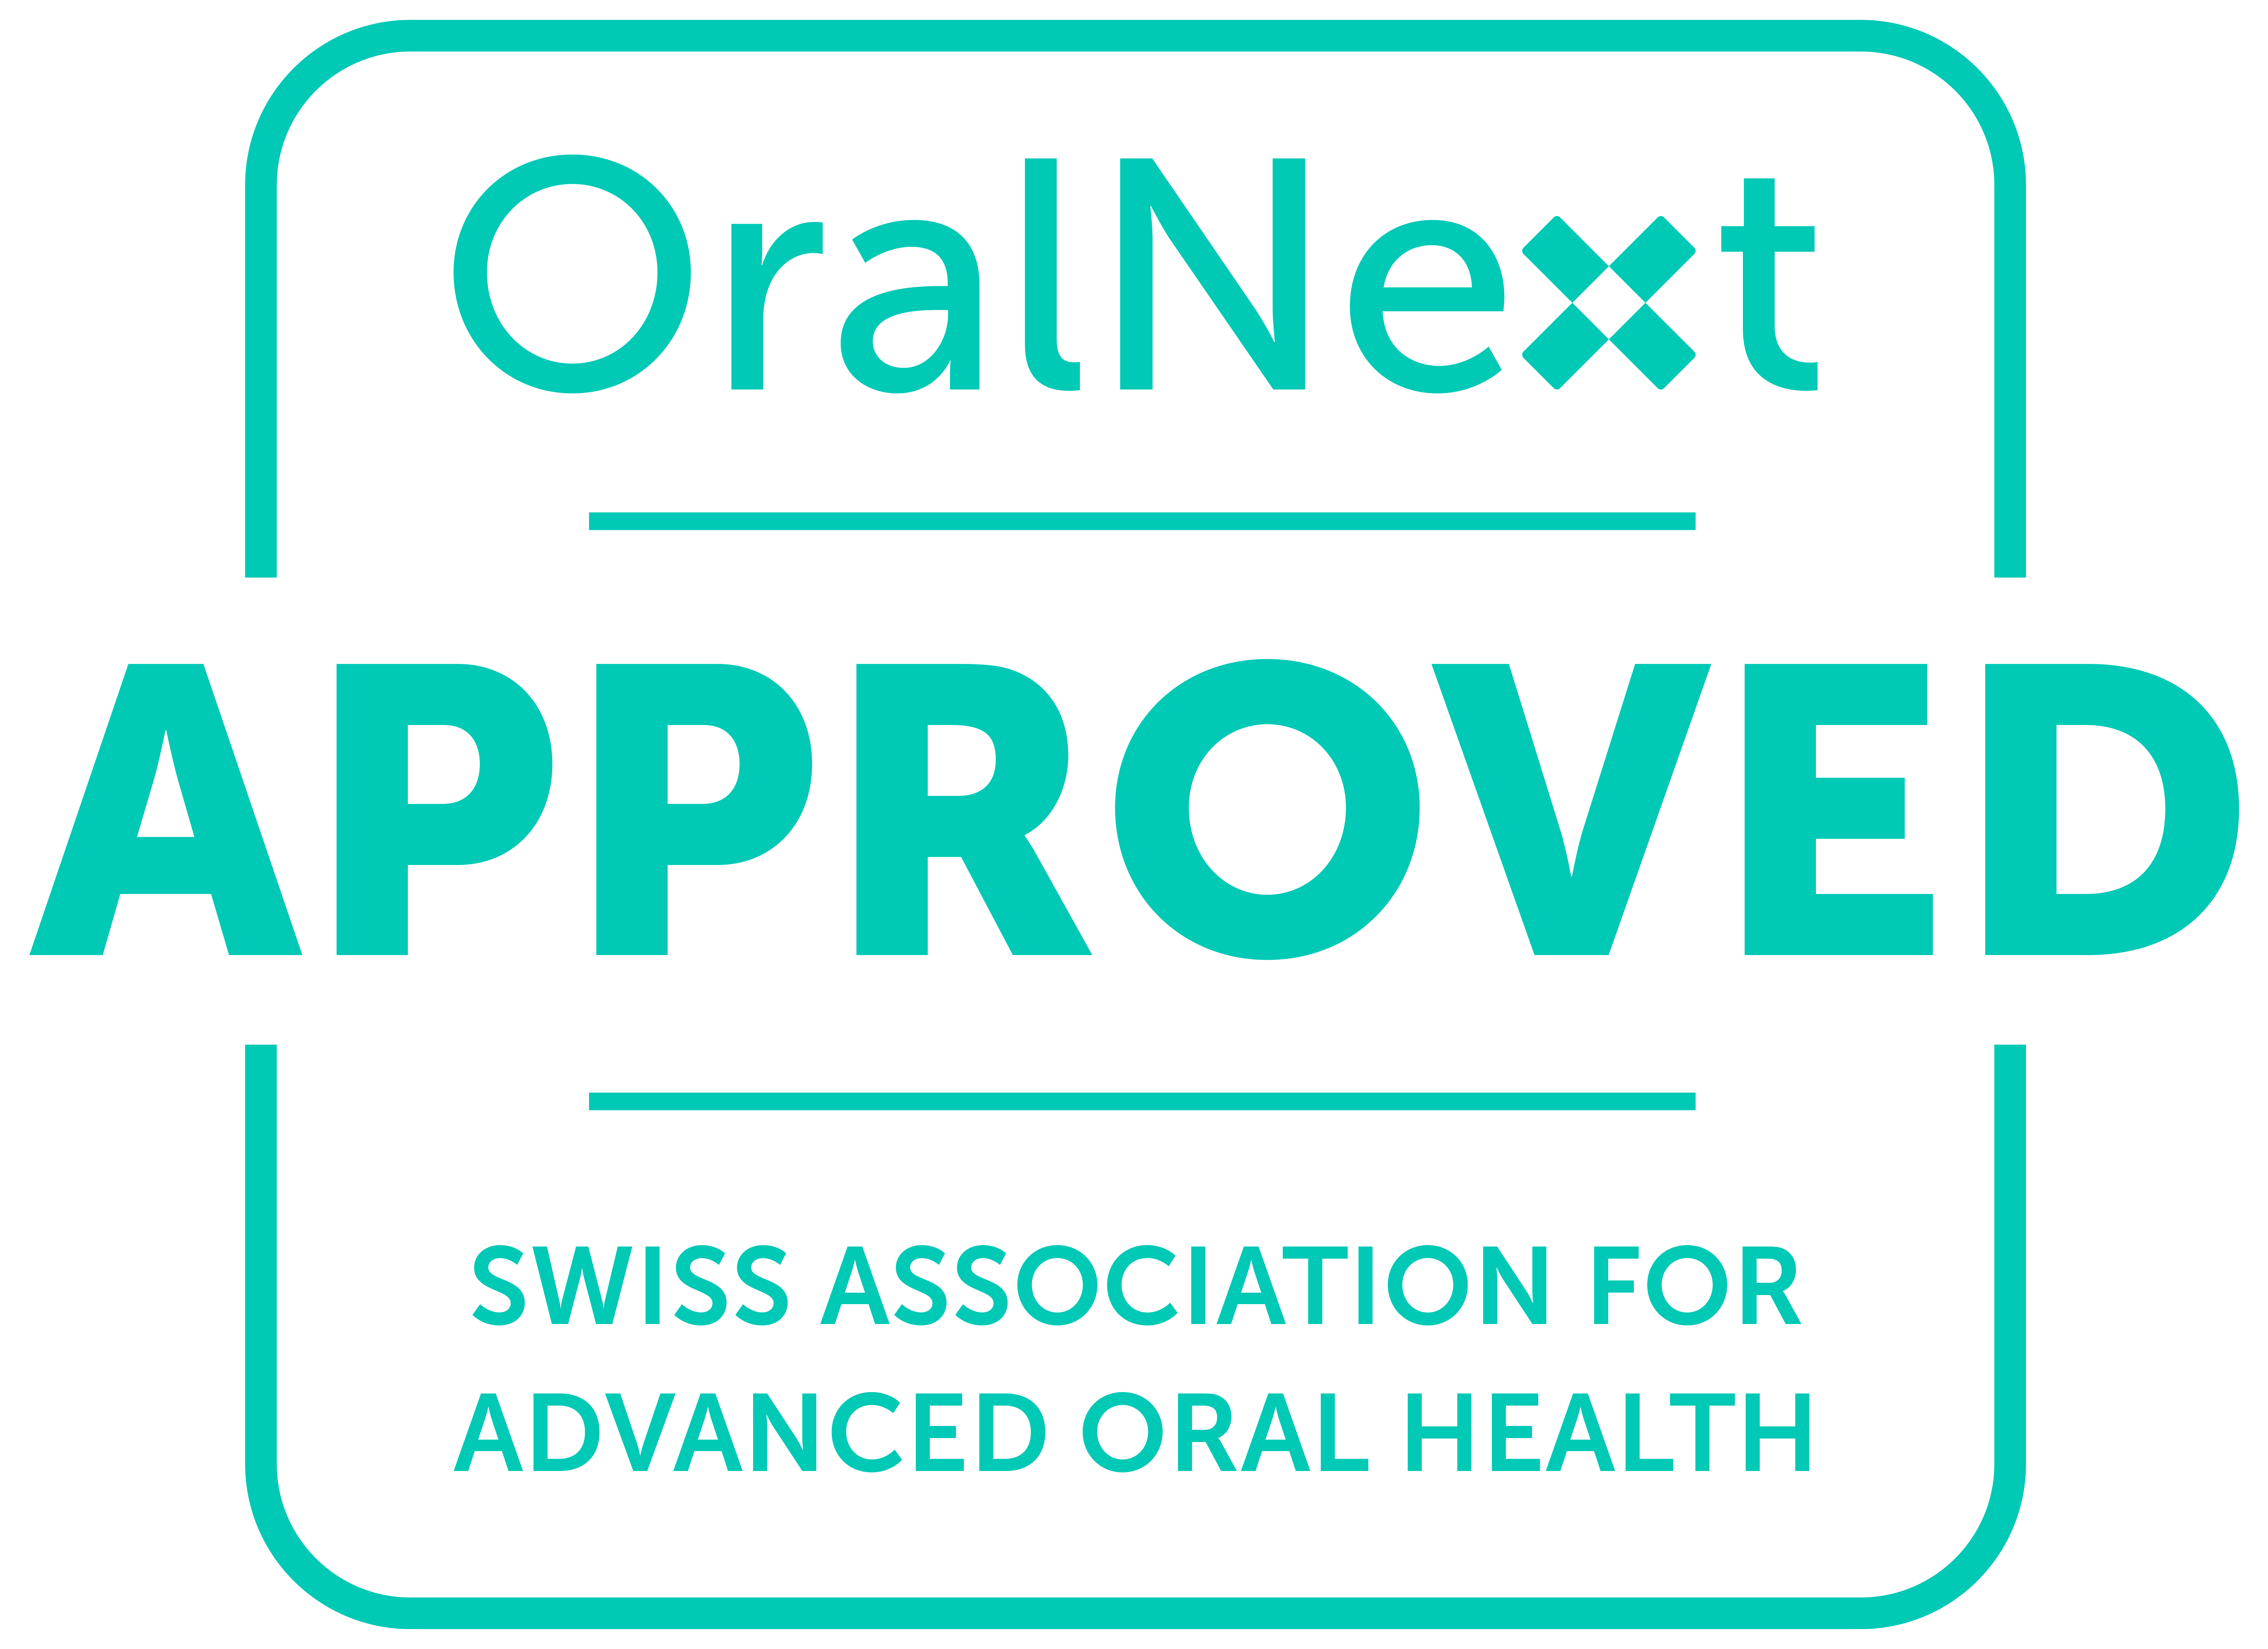 logo oralnext approved